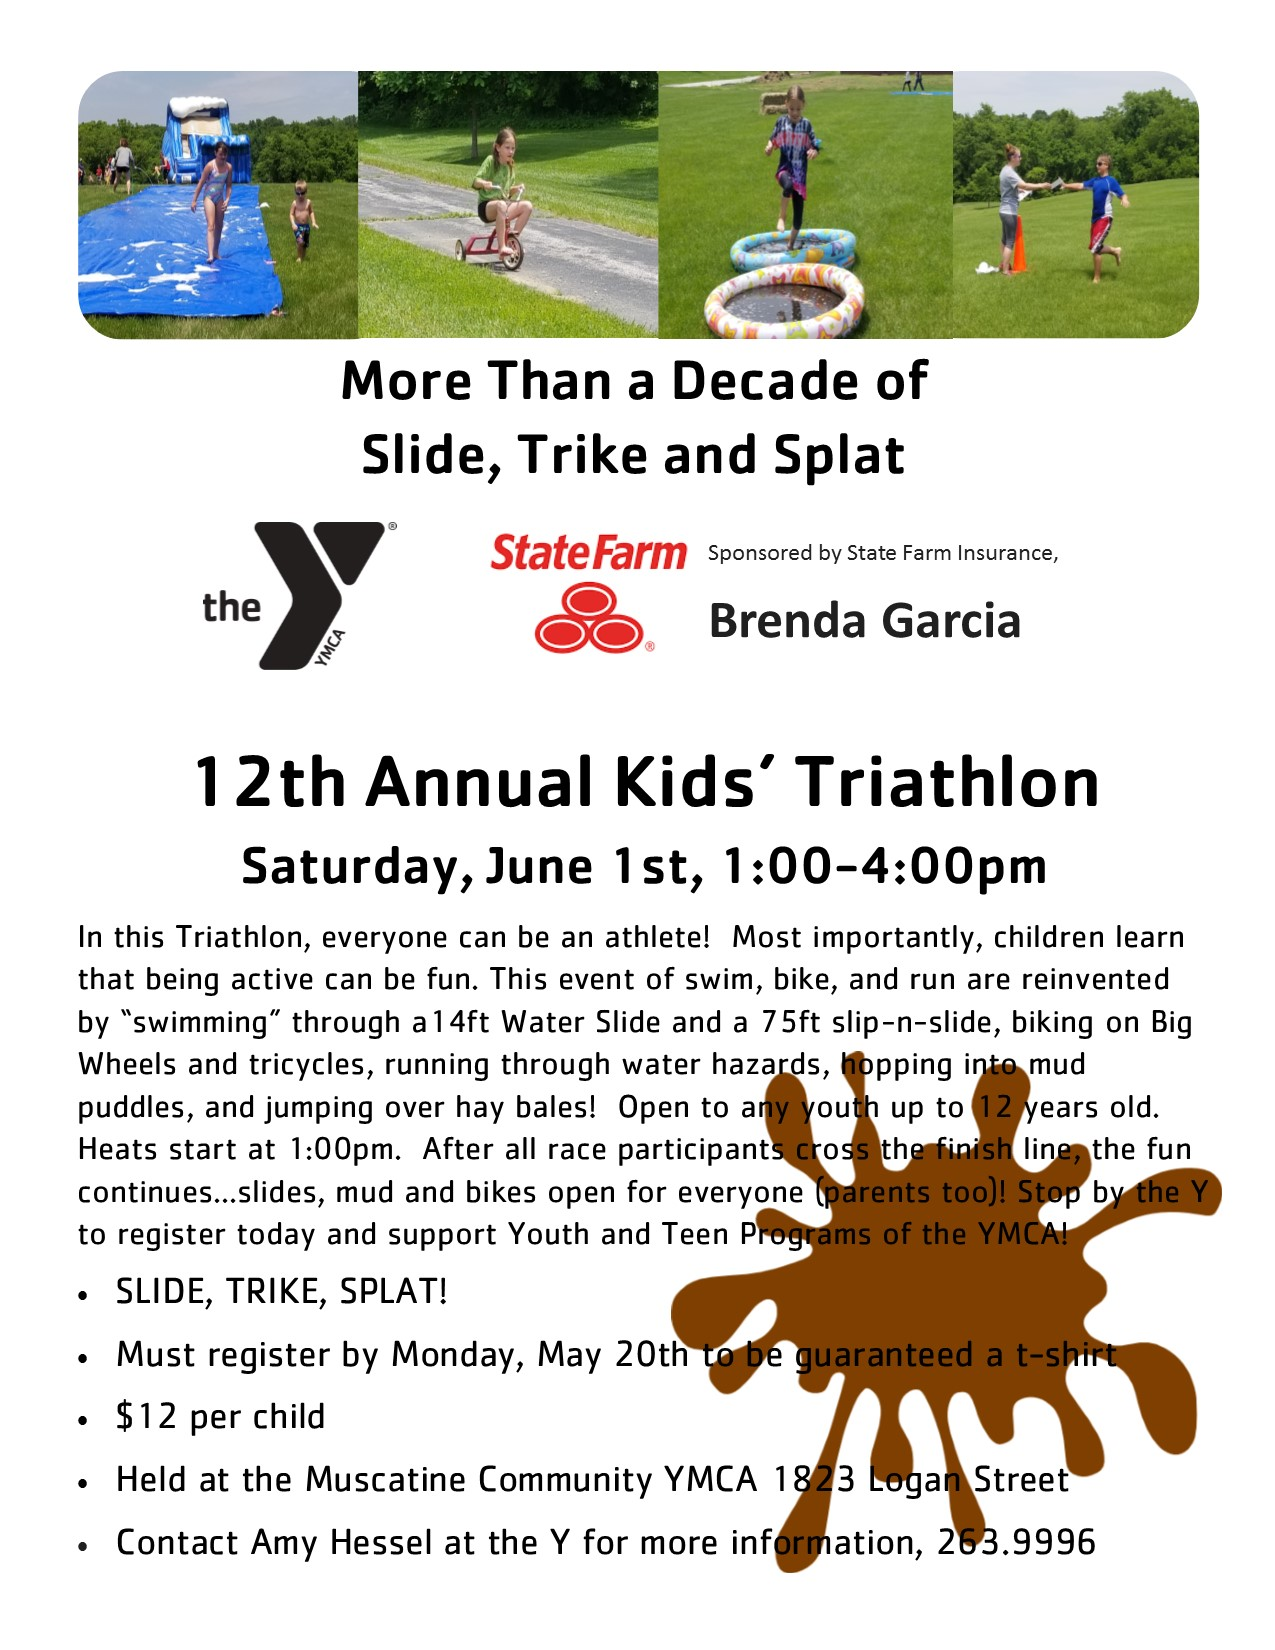 Muscatine Y's 12th Annual Kids Triathlon! - Muscatine